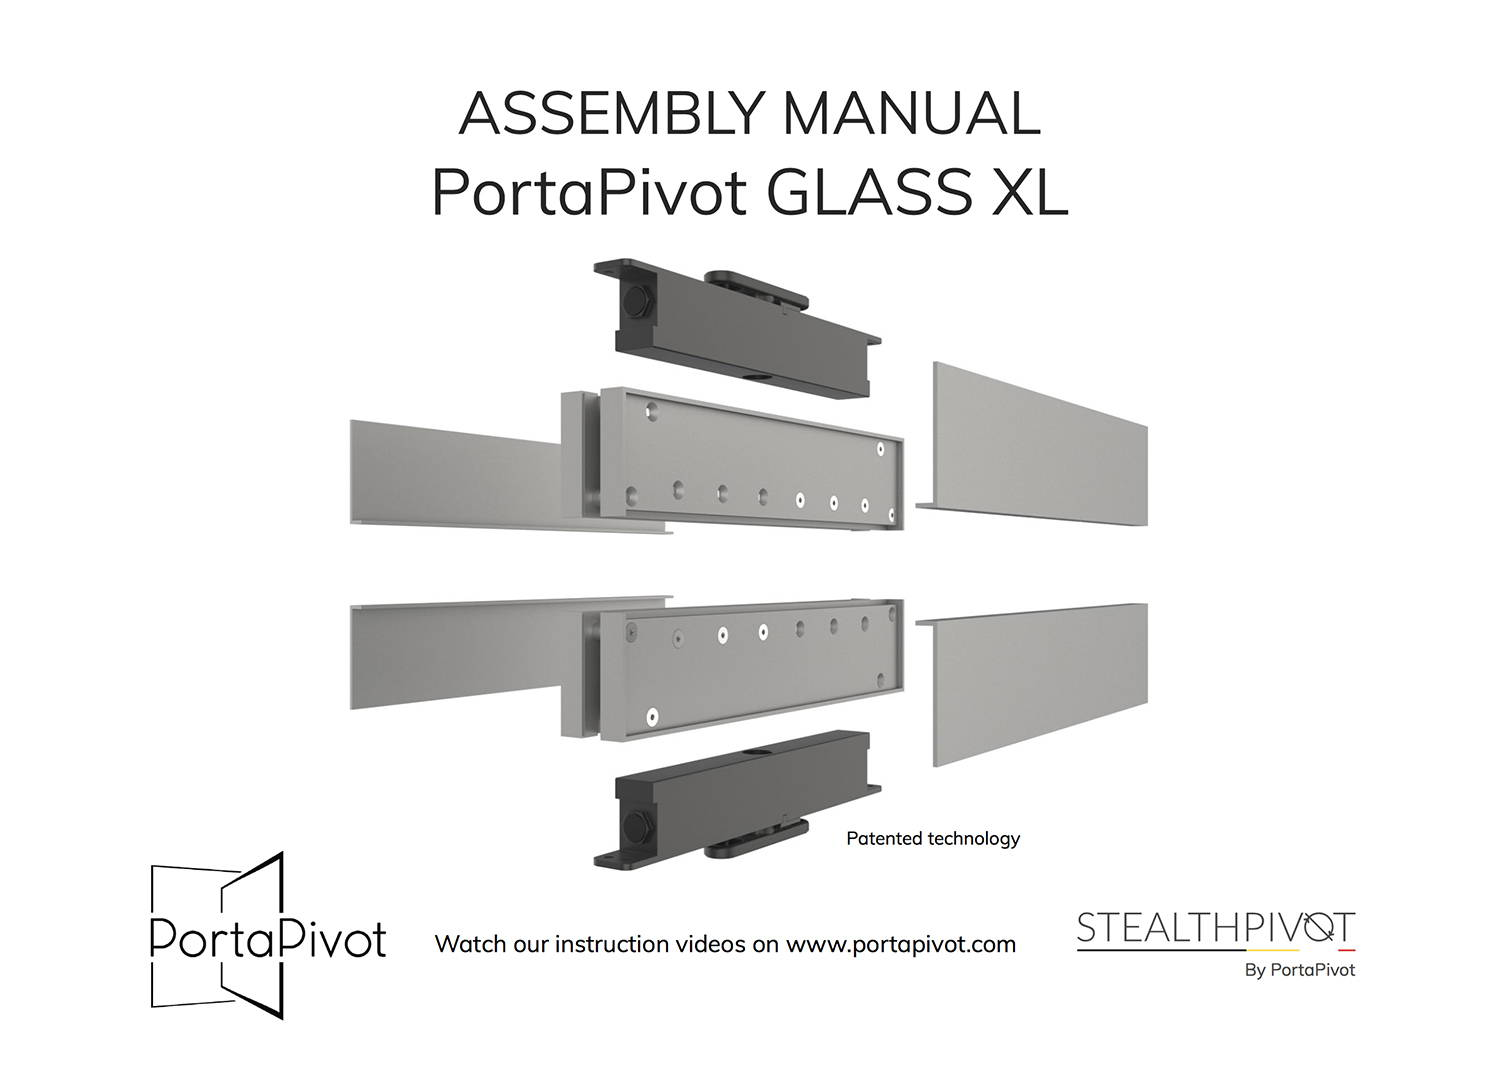 Portapivot Glass XL assembly manual